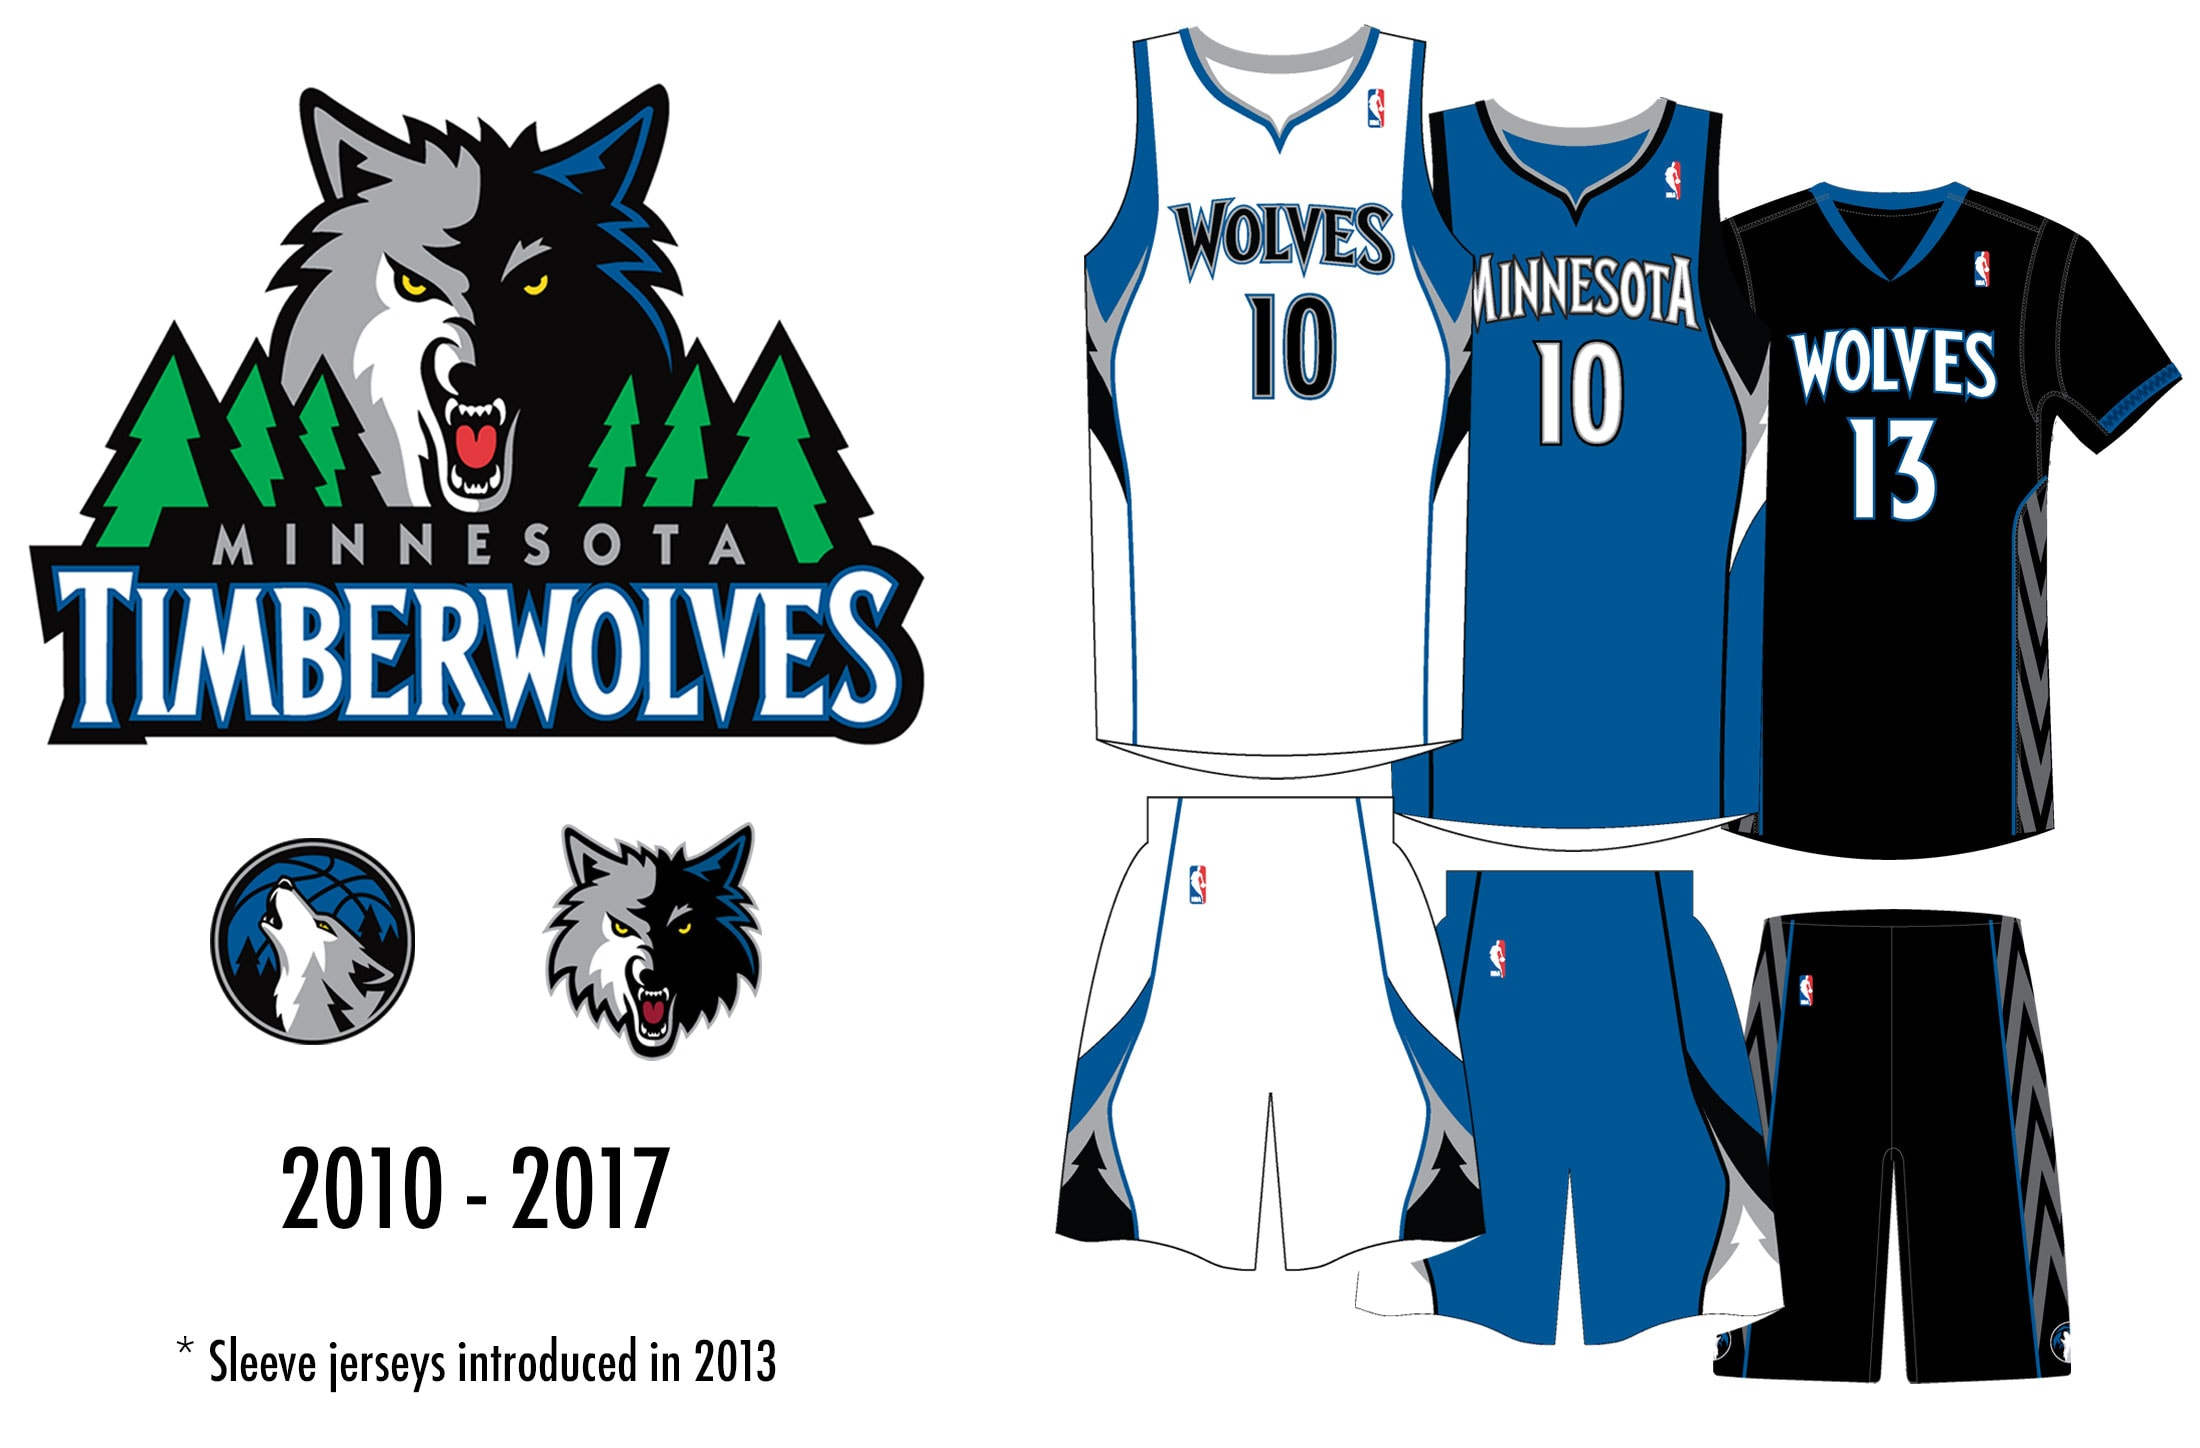 Timberwolves jerseys 2010 to 2017